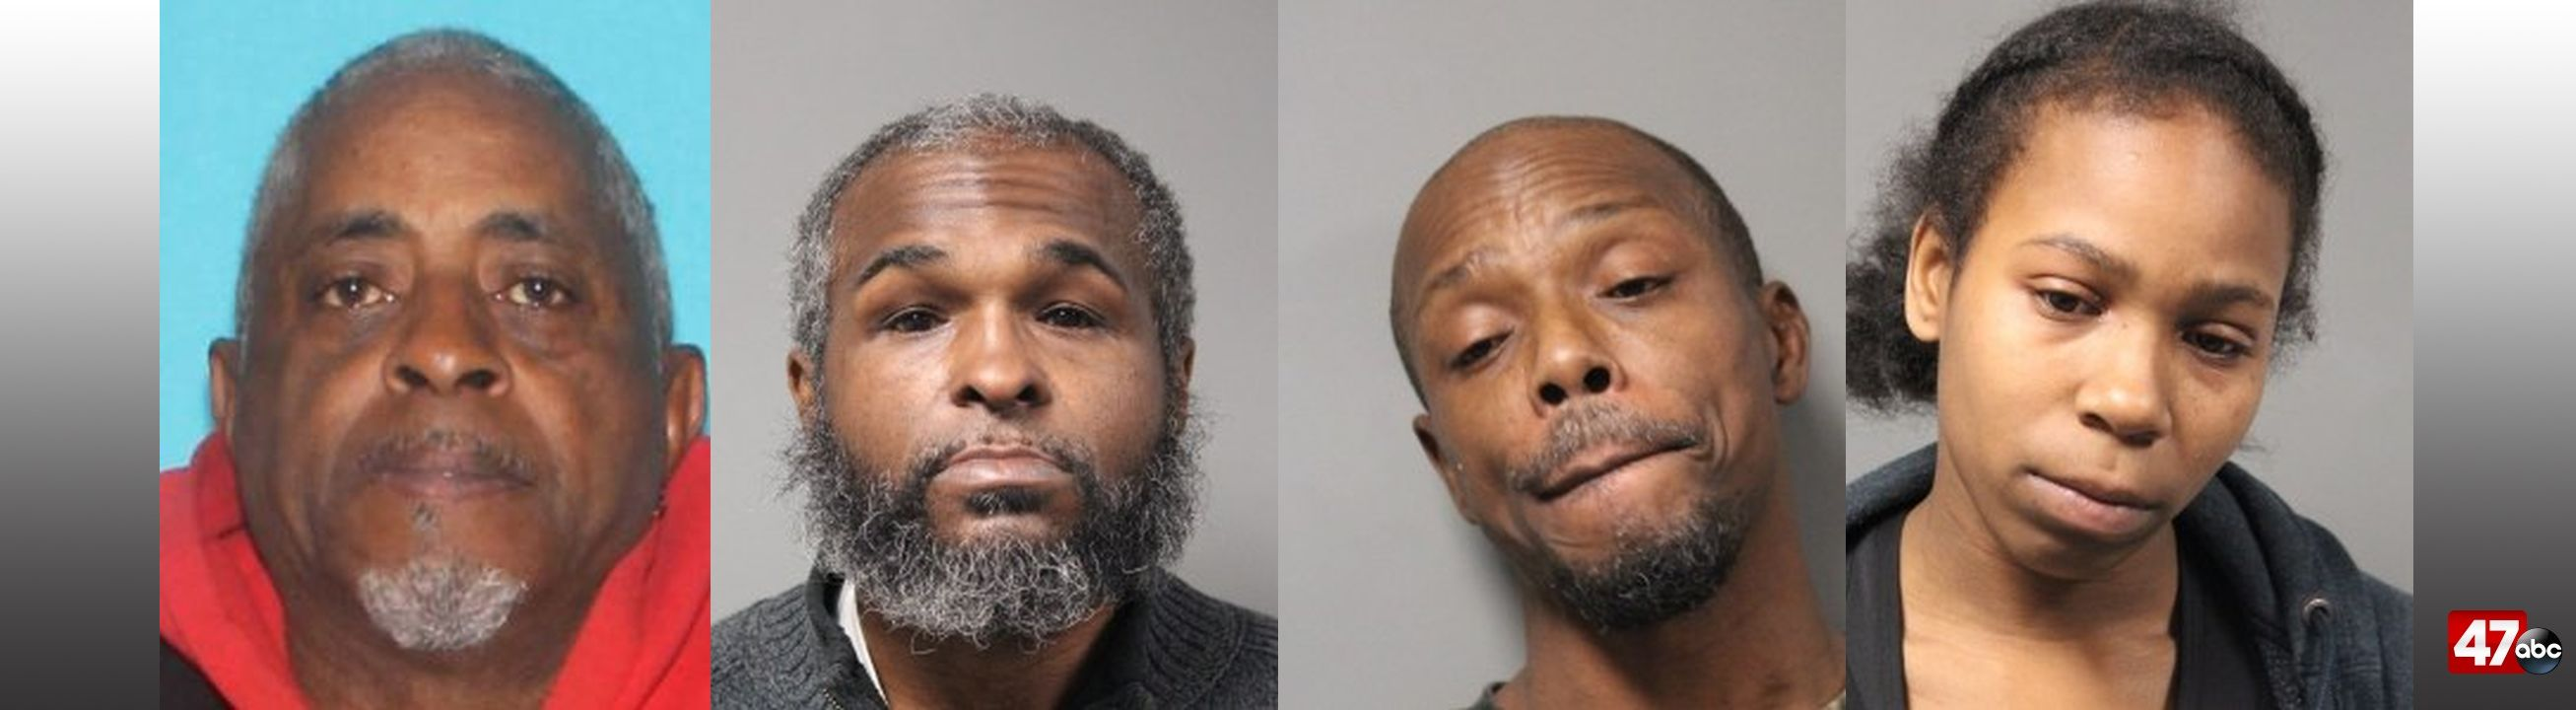 Drug bust at Dover motel leads to four arrests - 47abc